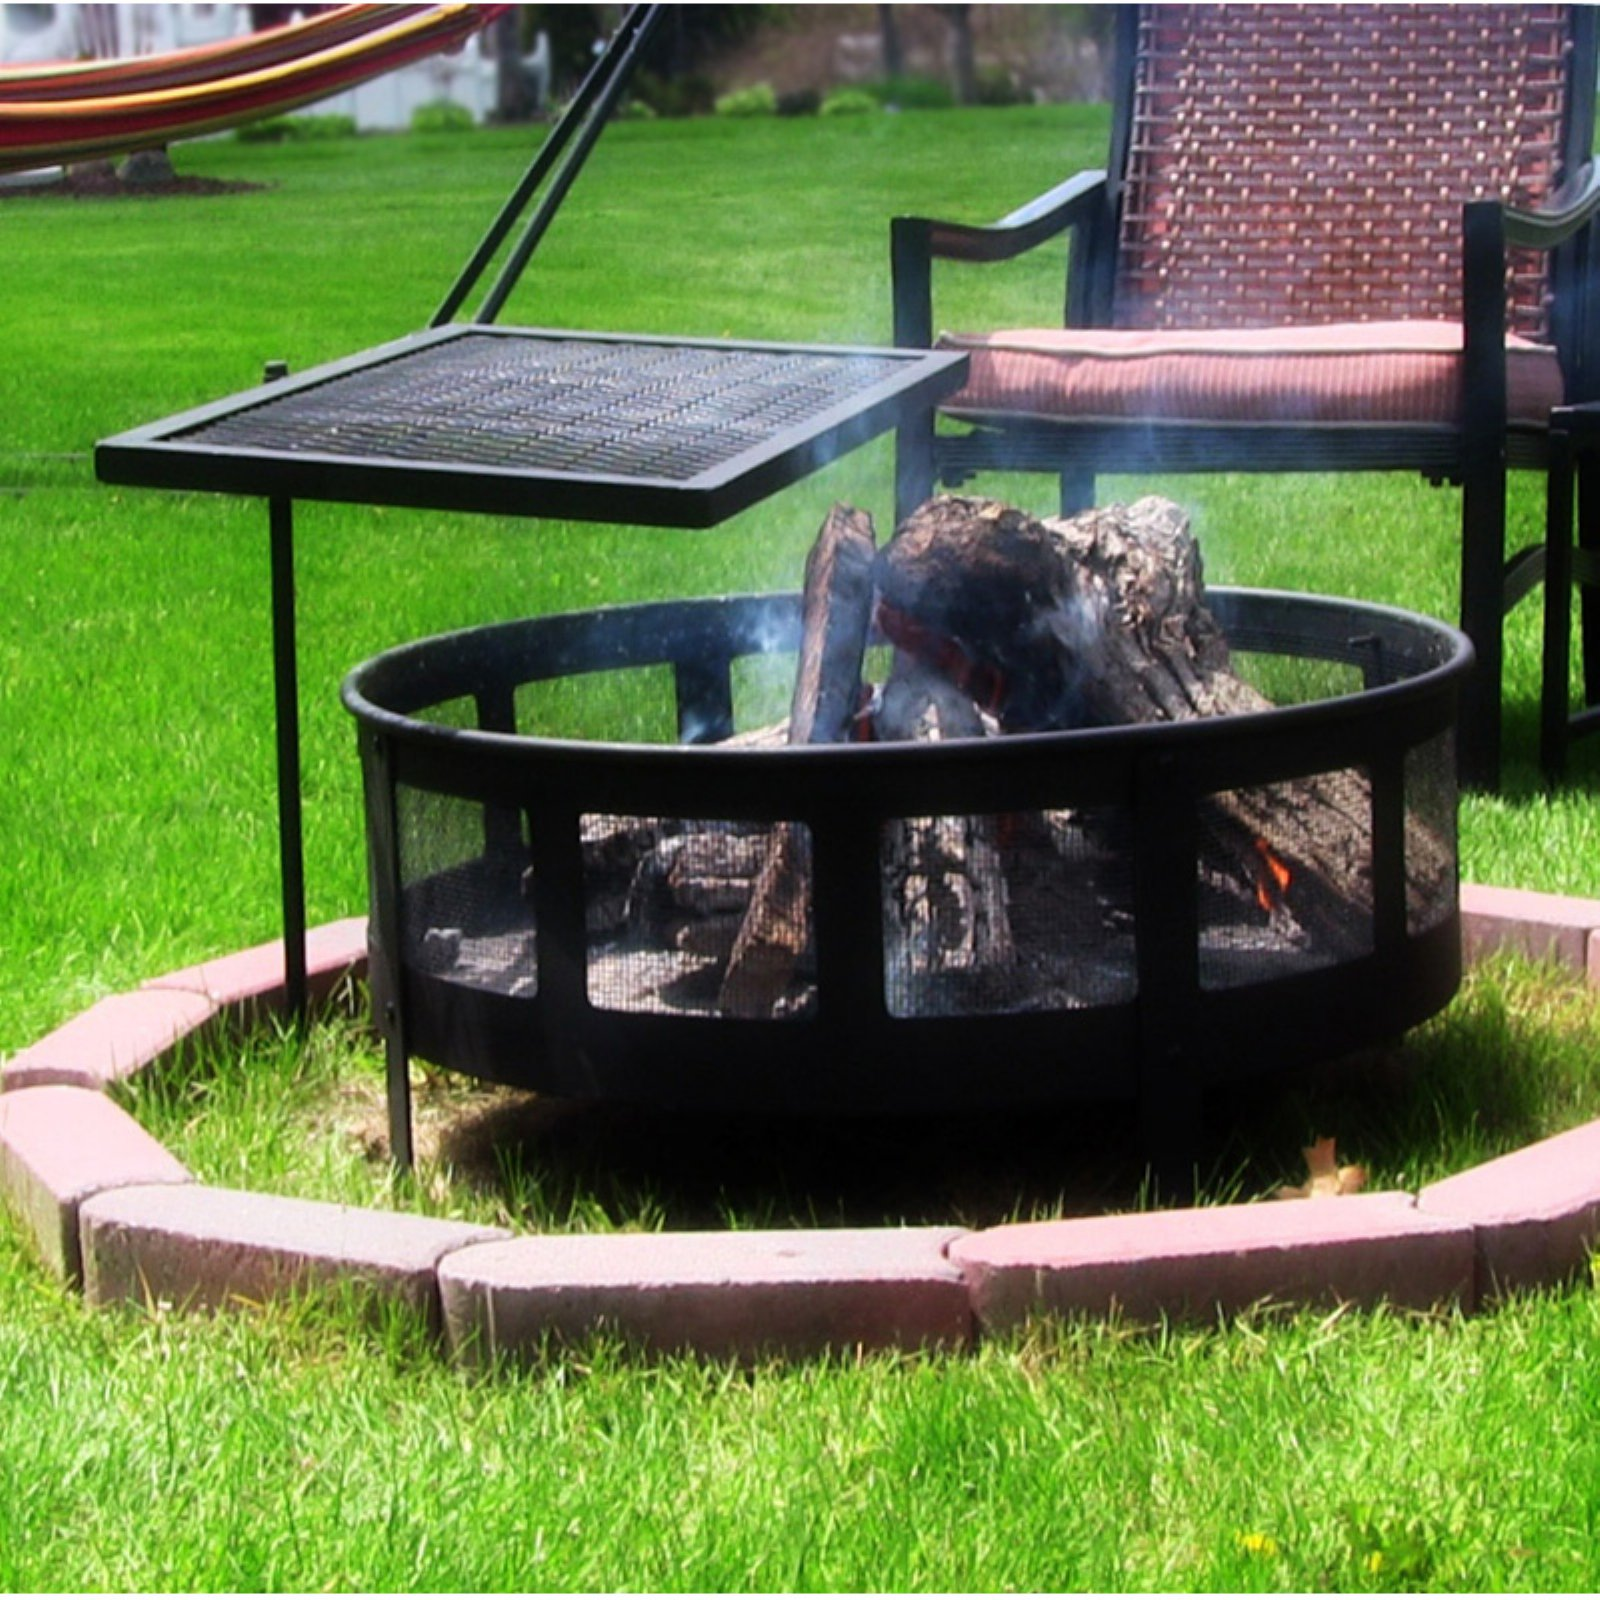 Sunnydaze Decor Heavy Duty Adjustable Campfire Cooking Swivel Grill